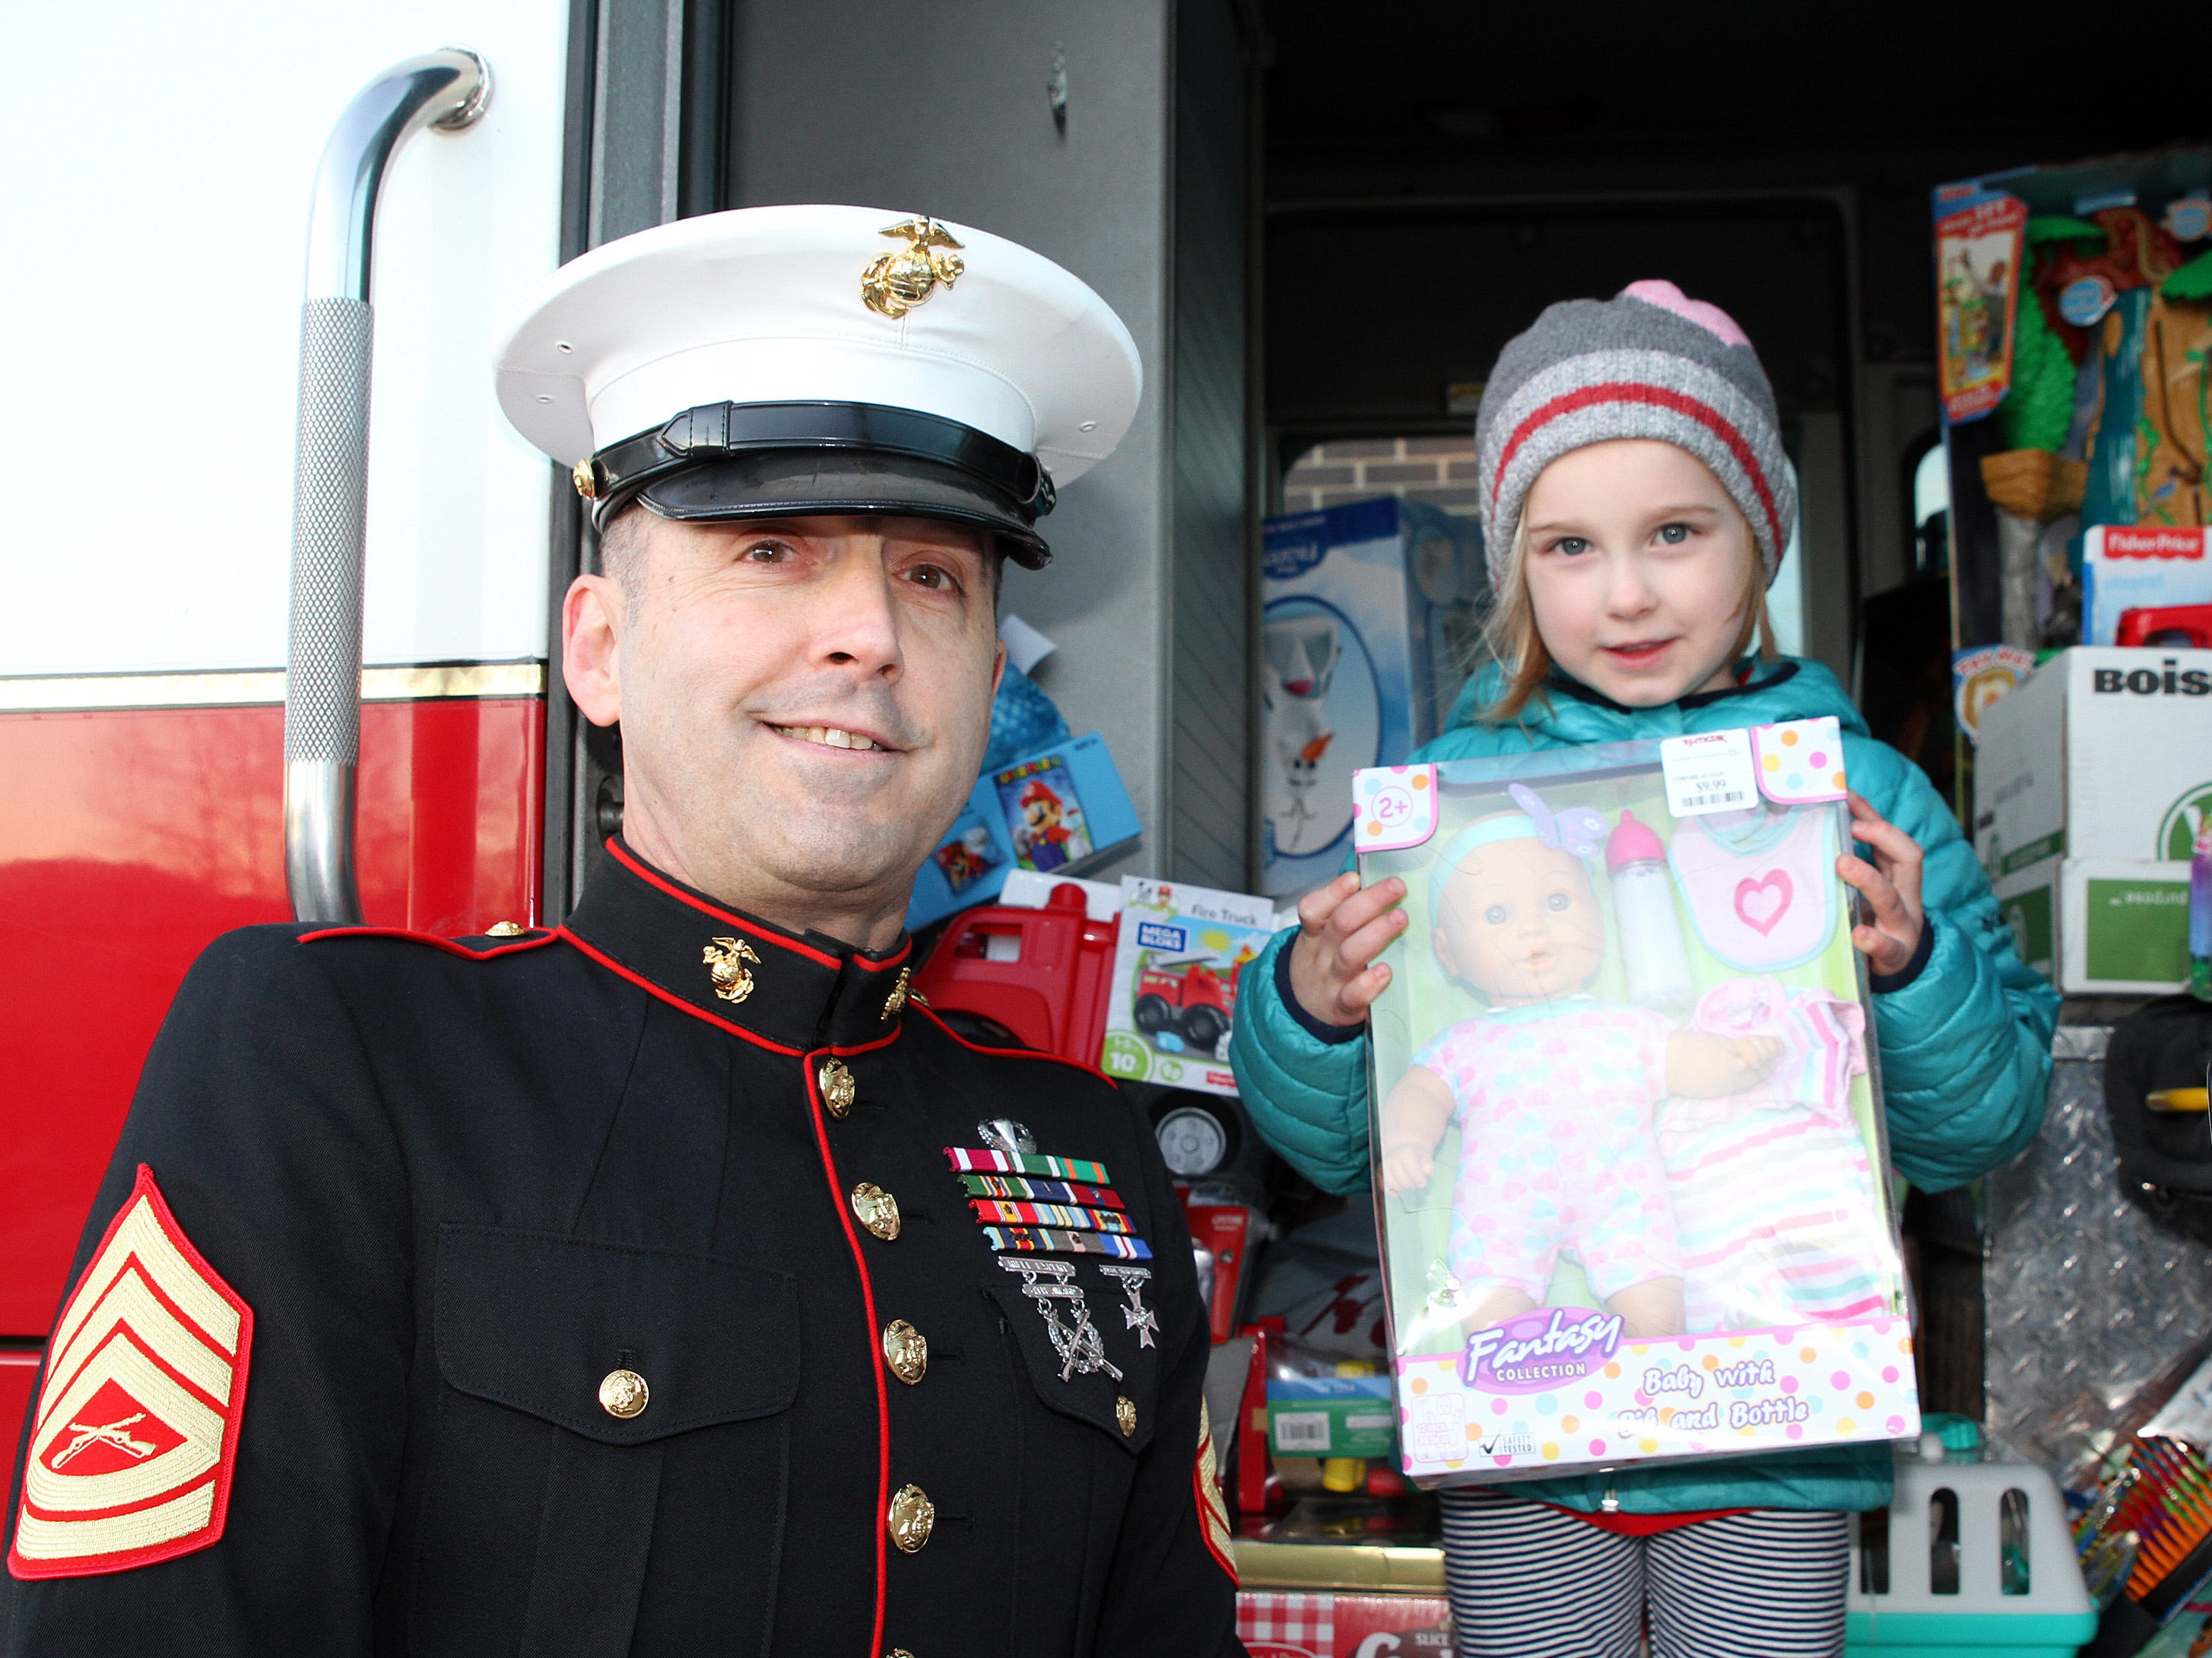 Mackenna Jones, 5, of Polk City helps retired Marine Gunnery Sgt. Mark Amann, current member of the Ankeny Fire Department, as gifts are dropped off at Ankeny's fill the truck day during the U.S. Marine Corps Toys for Tots campaign at the Ankeny Fire Station Headquarters on Sunday, Dec. 16, 2018.